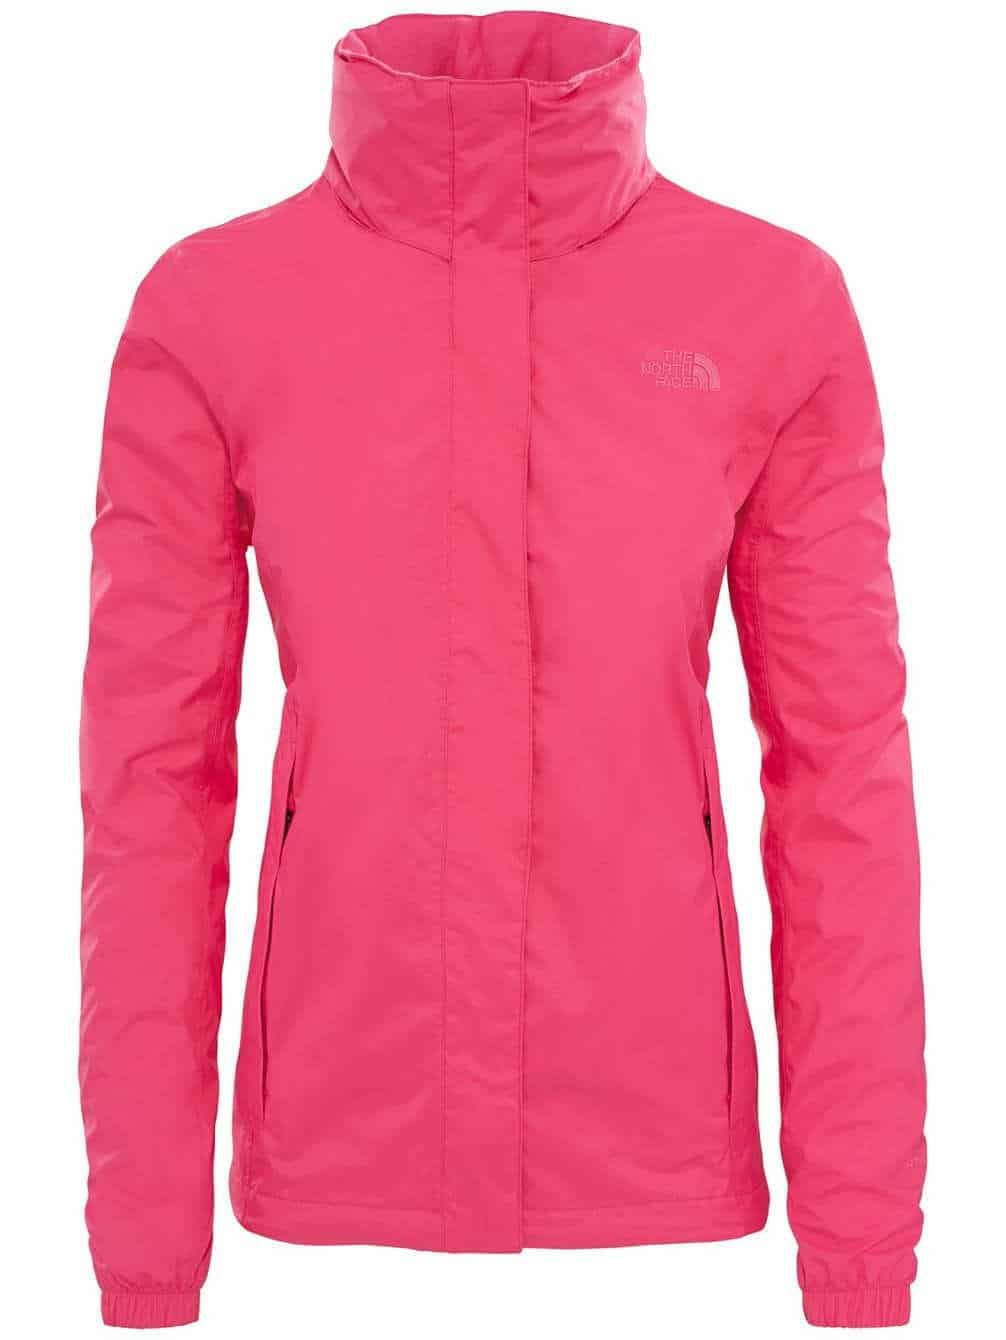 Womens Waterproof Running Jacket – The North Face